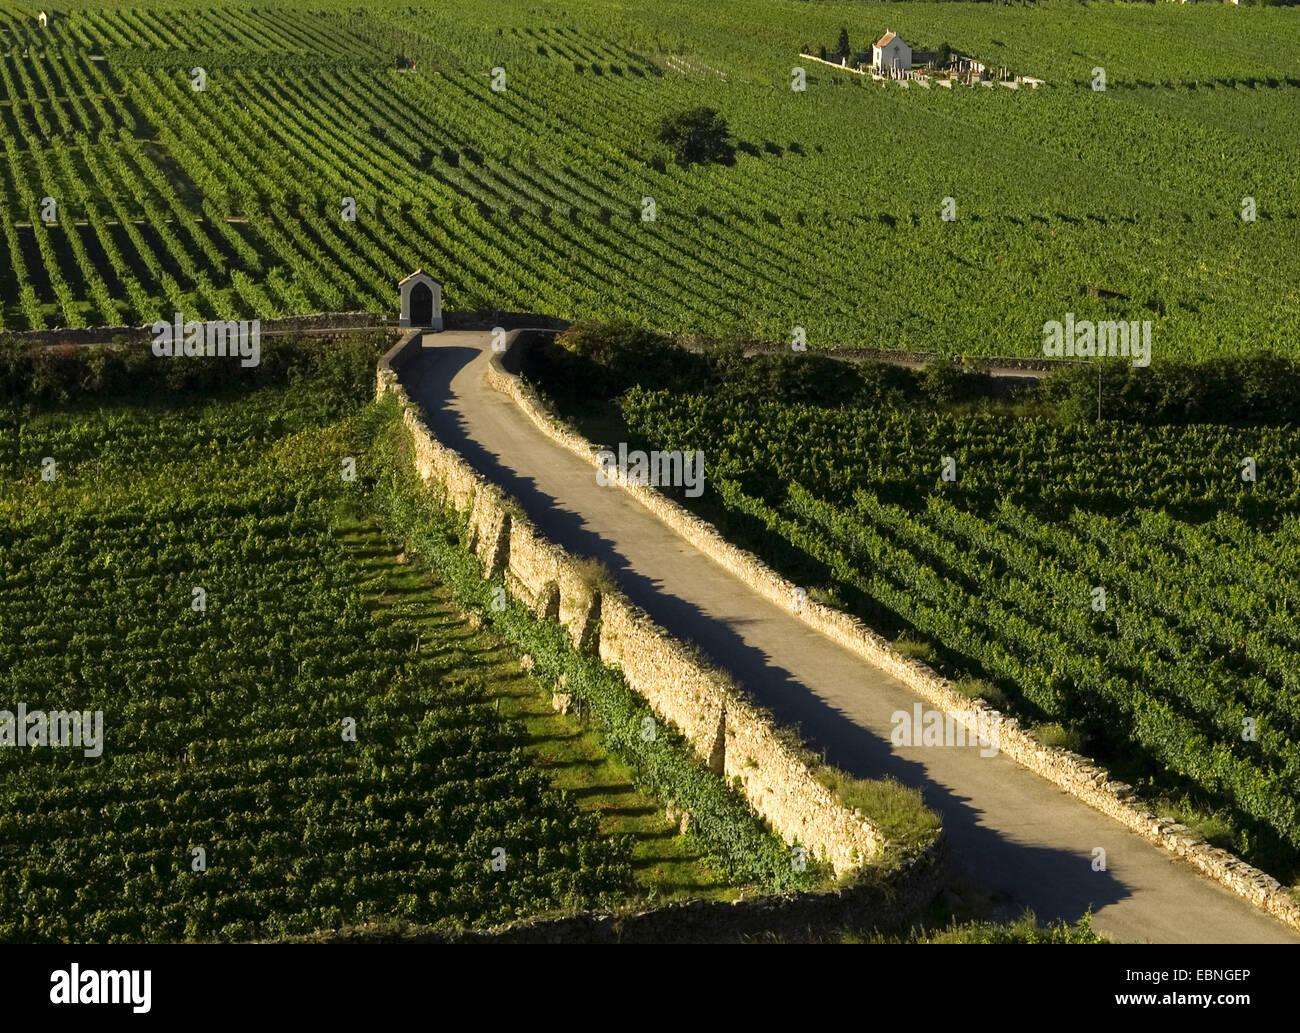 street and winery in the midst of vineyards, Austria - Stock Image